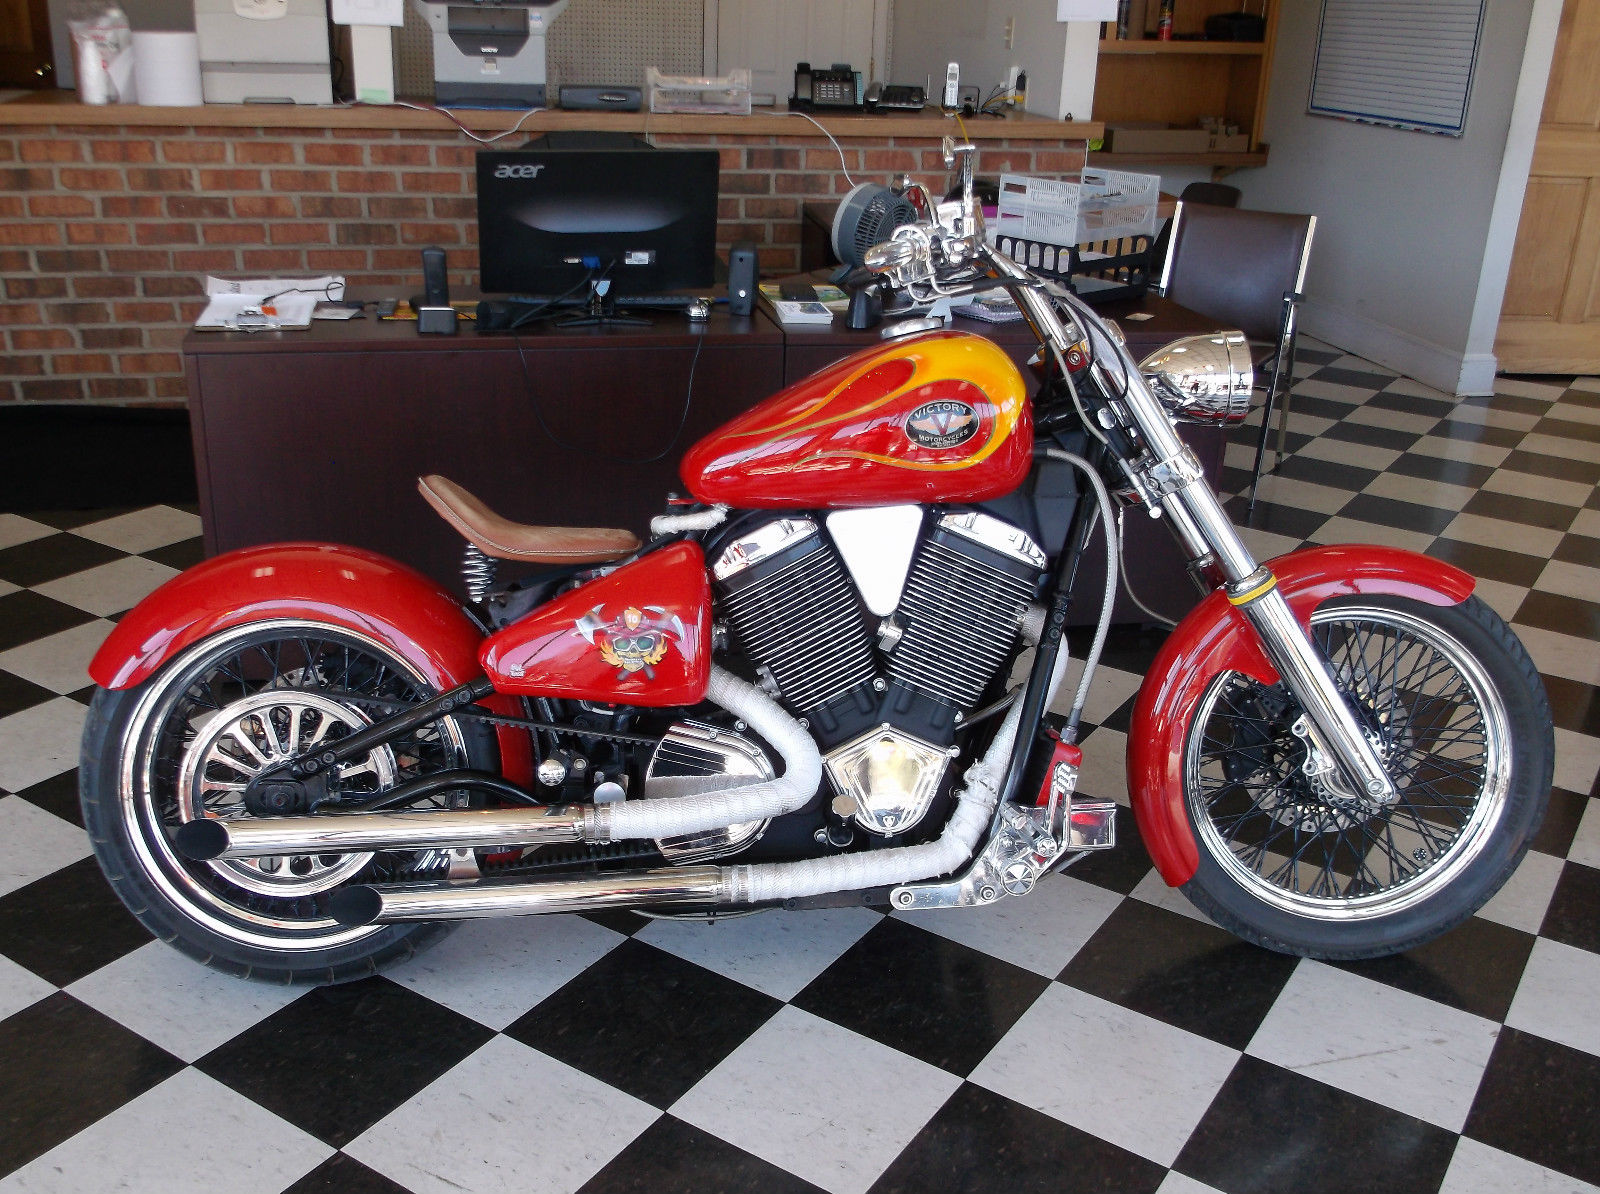 Exhaust Heat Wrap >> 2000 VICTORY V92, CUSTOM BOBBER, WIDE TIRE KIT, CUSTOM FLAMES, $13000 INVESTED!!